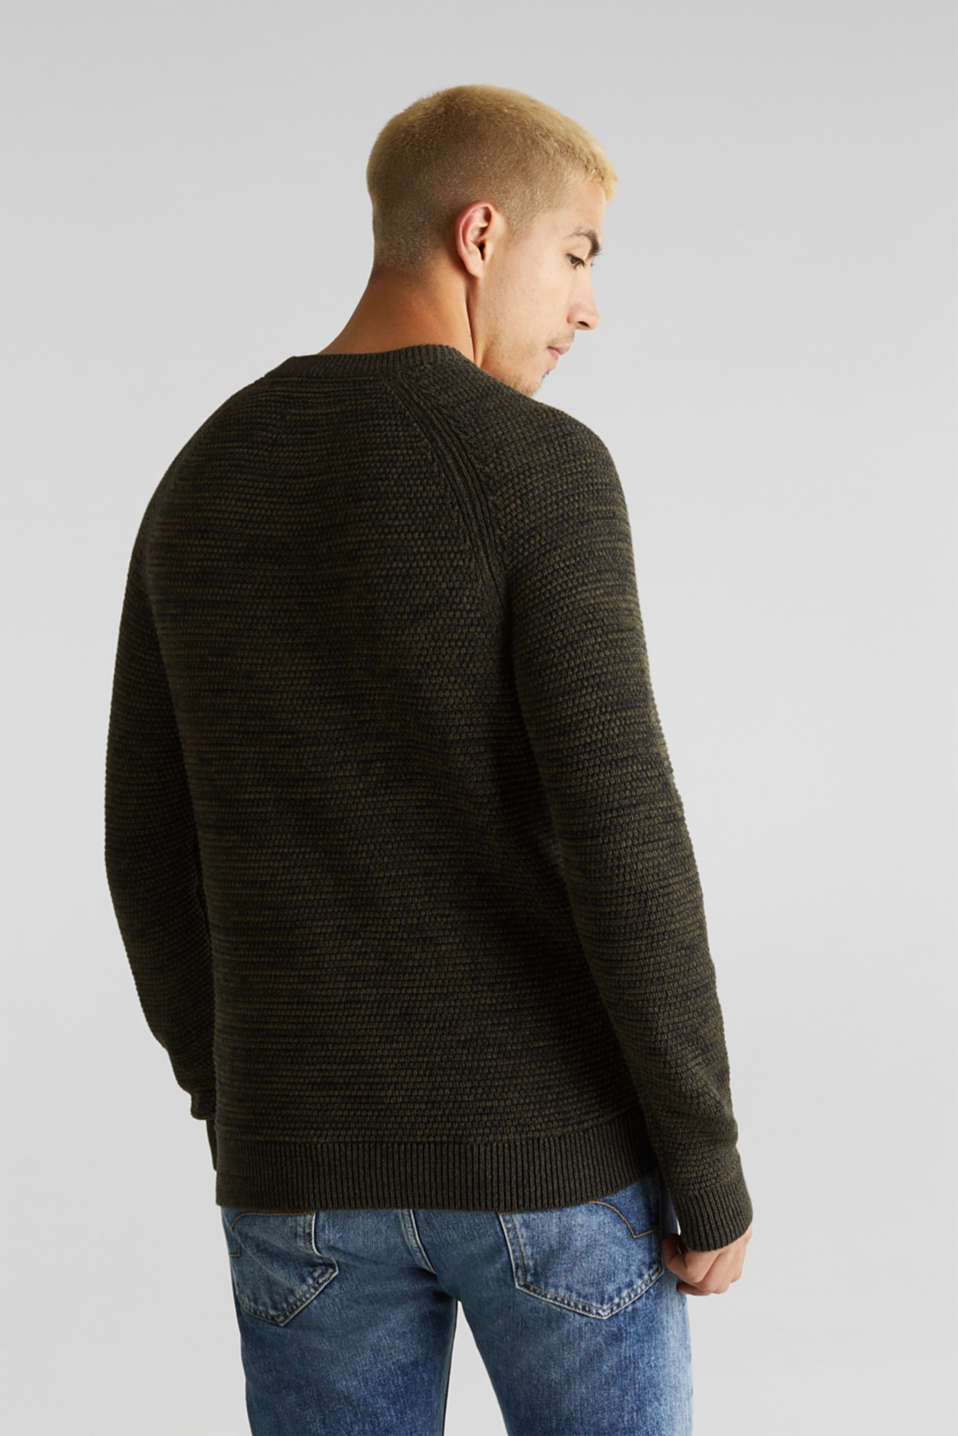 Textured jumper made of 100% cotton, KHAKI GREEN 5, detail image number 3